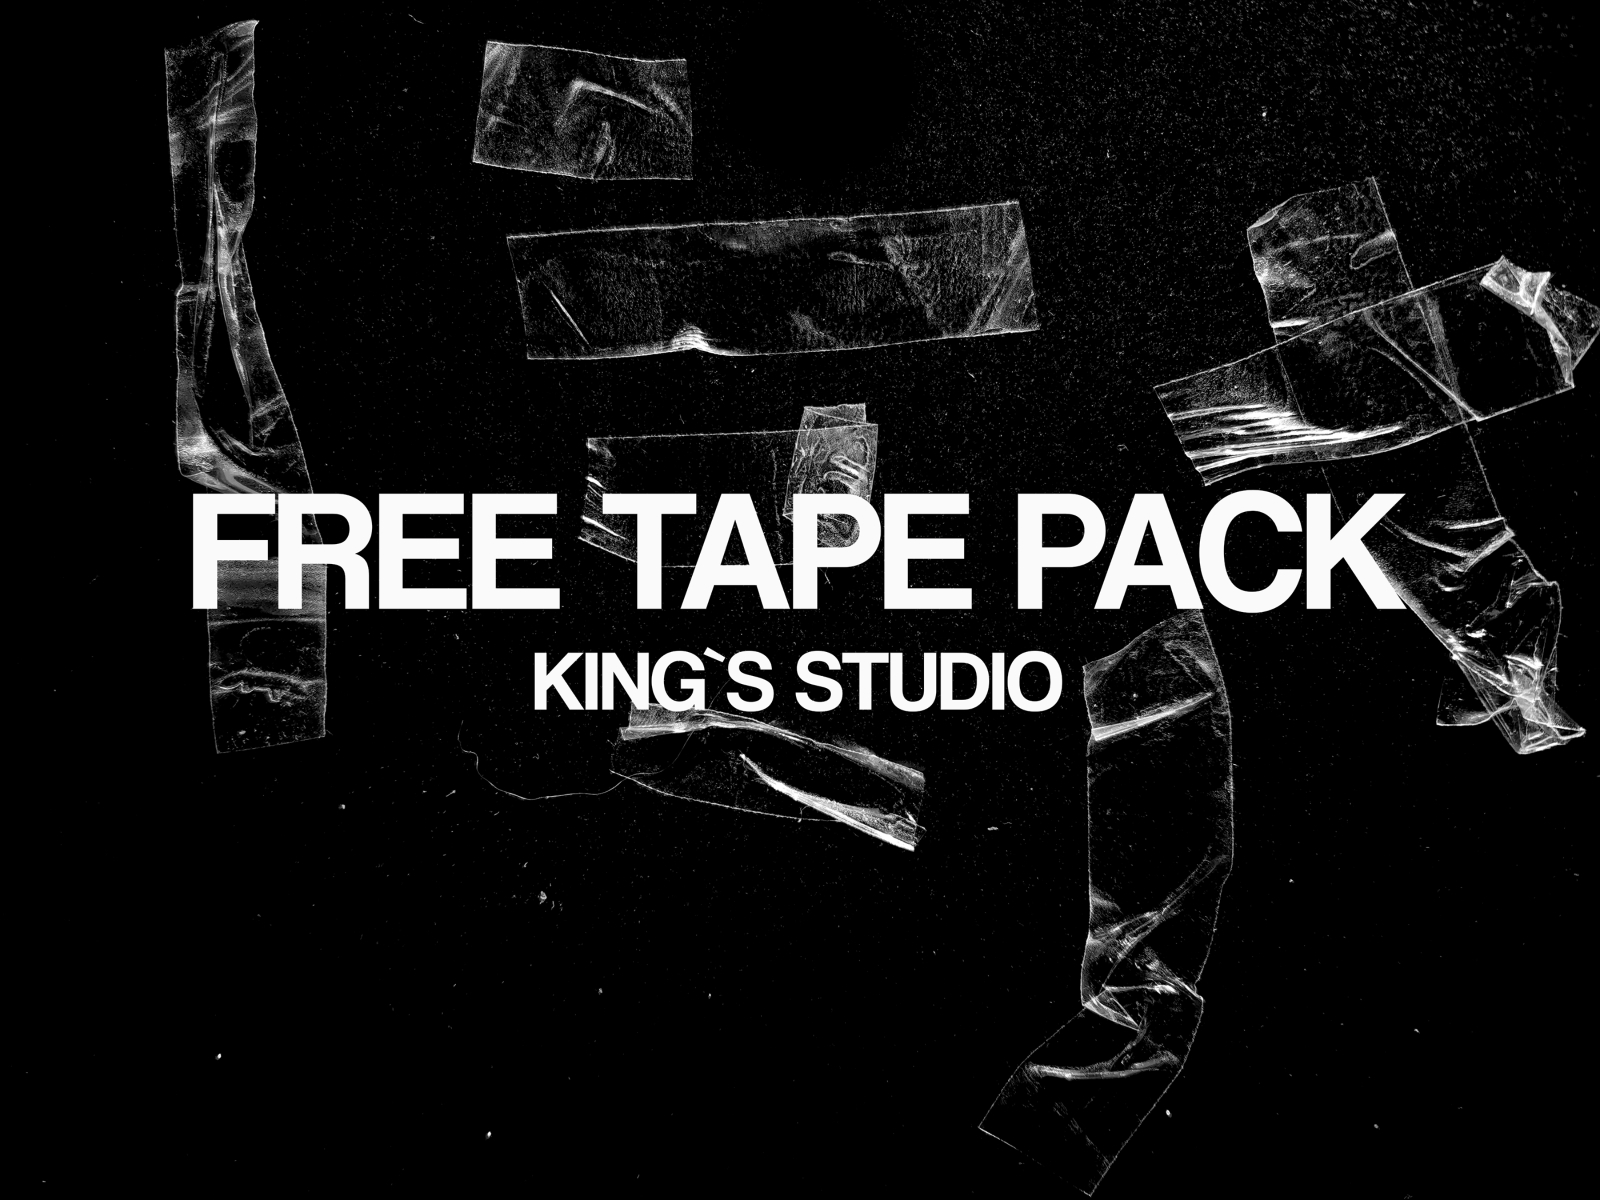 Free Tape Pack cover image